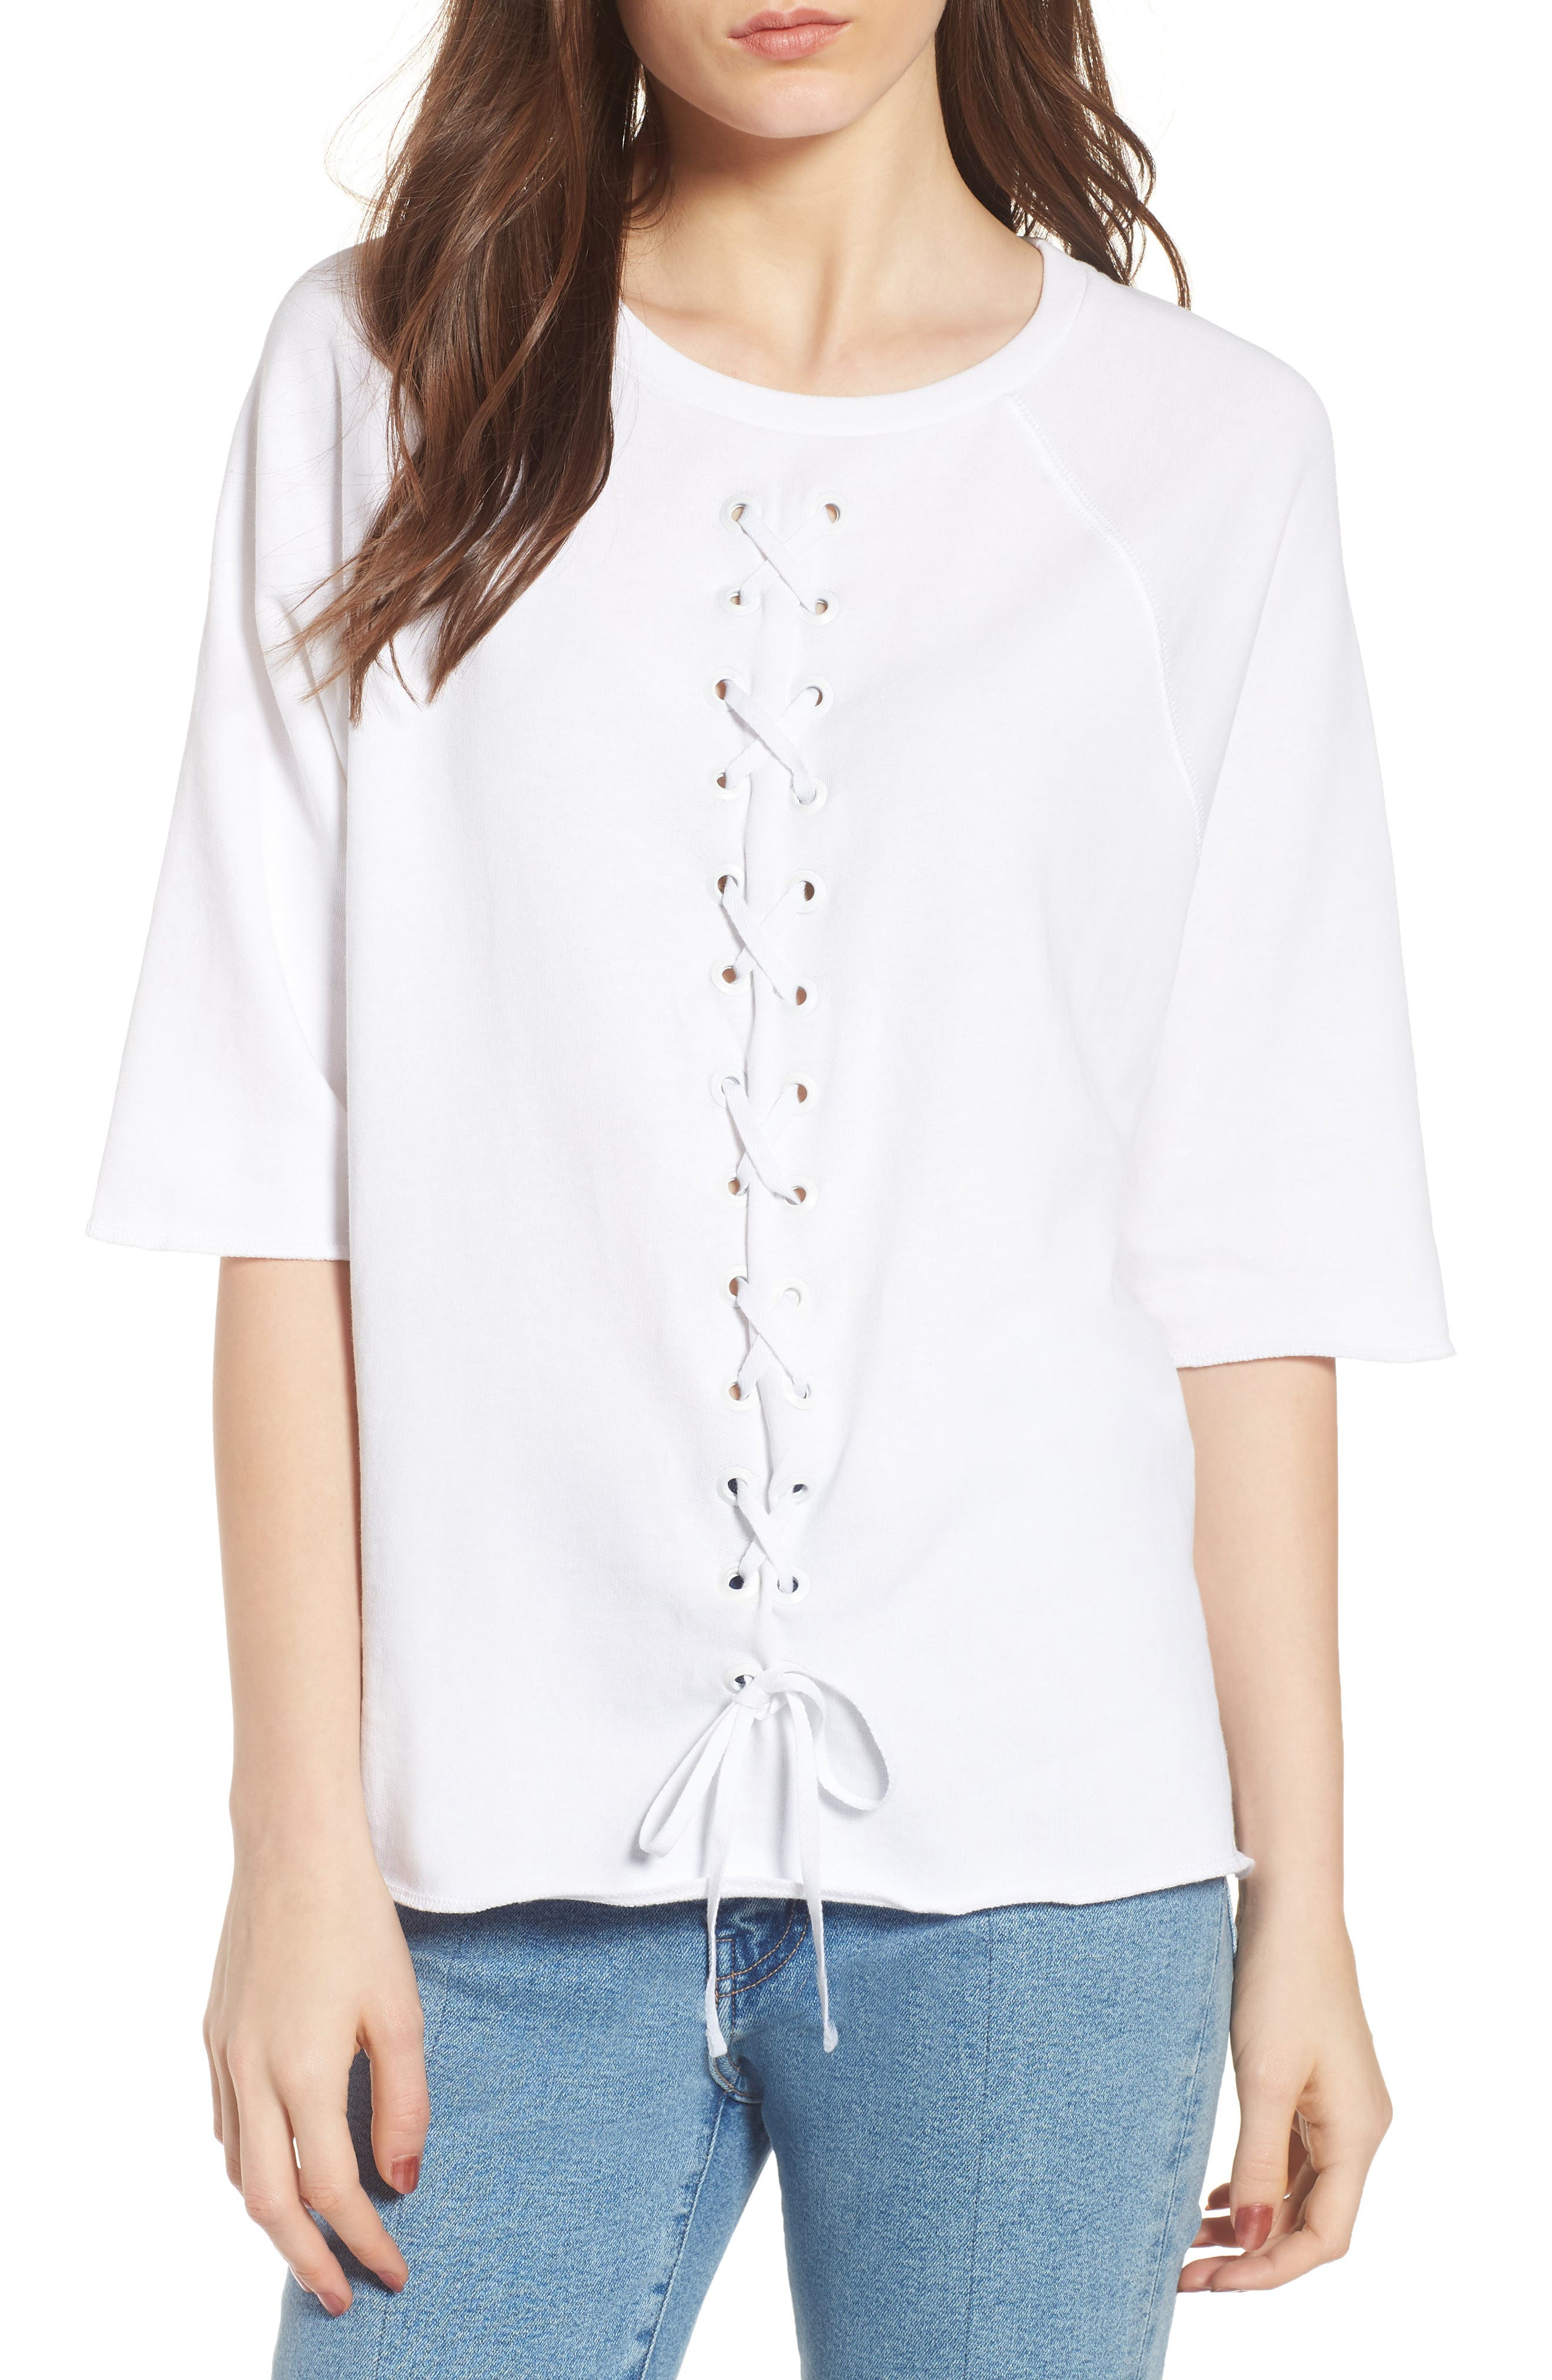 SOUTH PARADE Julie - Vertical Eyelets Terry Top in White